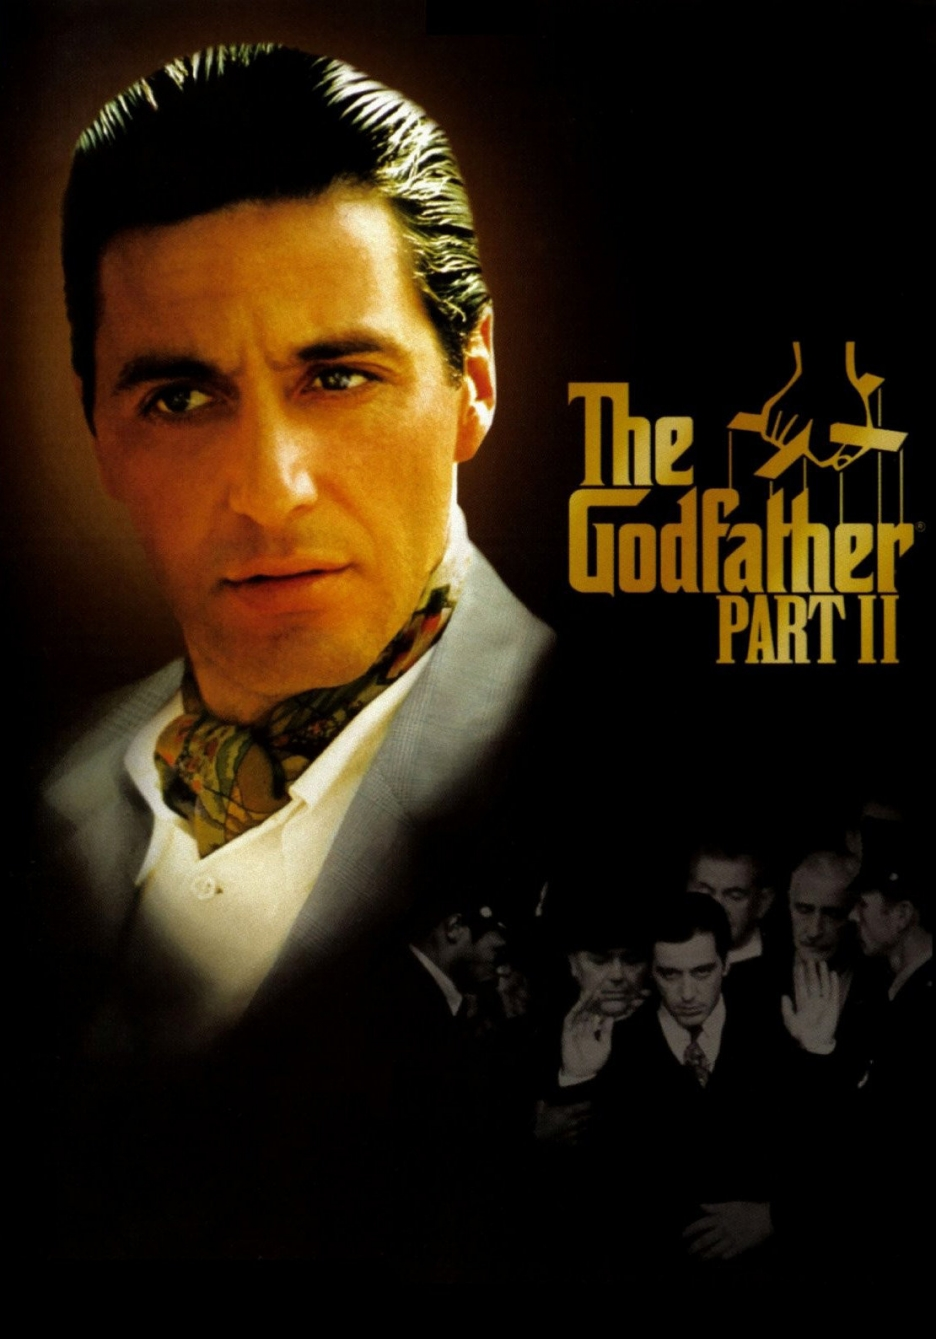 the_godfather_part_2_poster.jpg